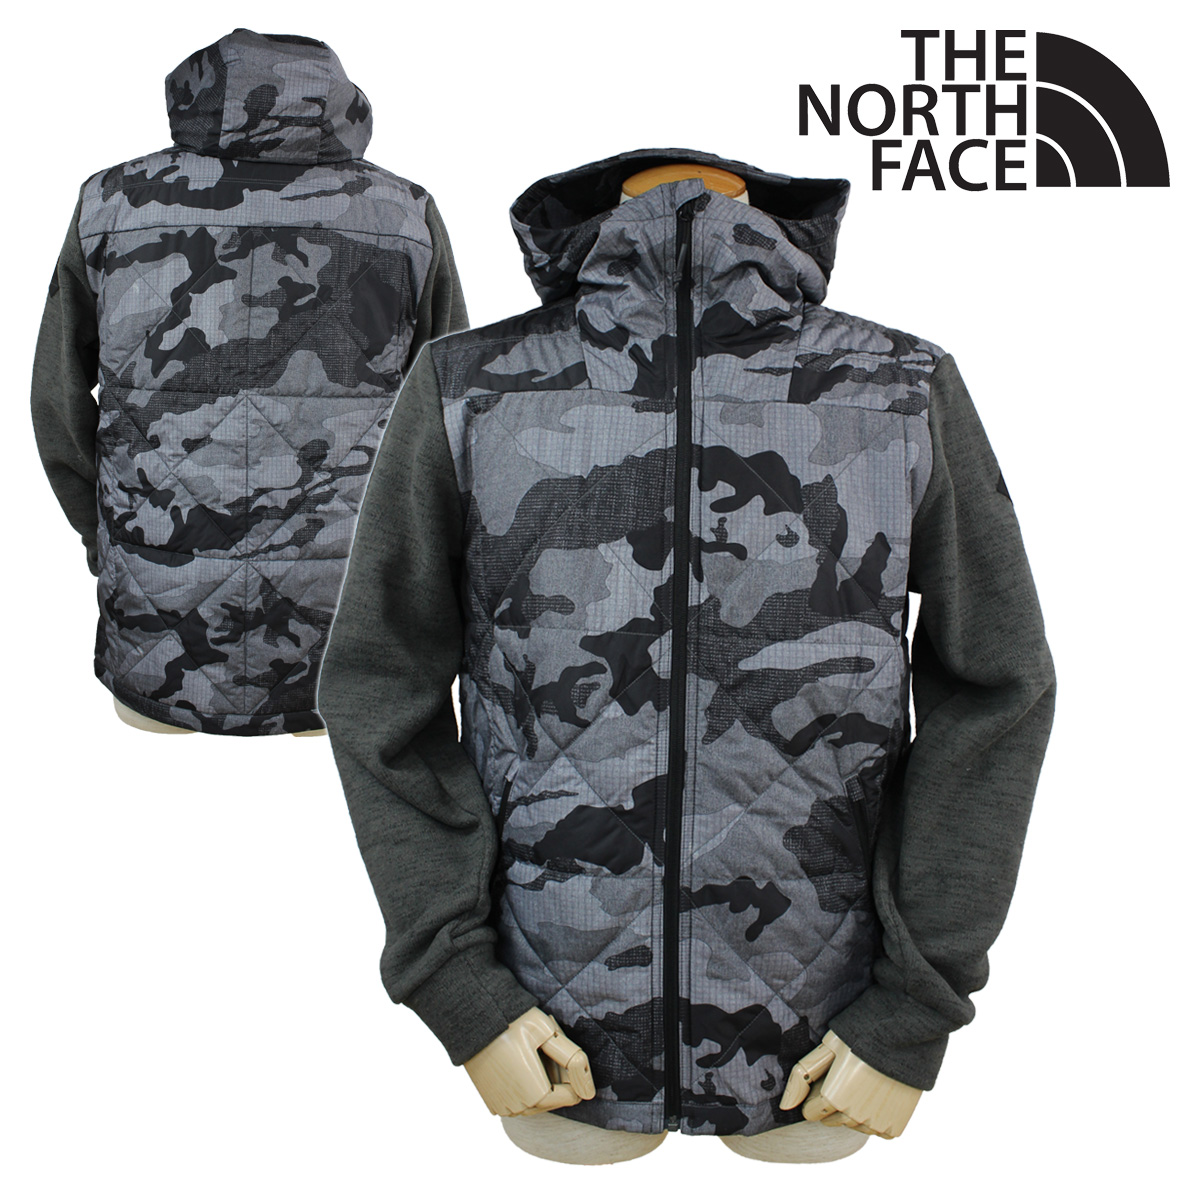 1f81c8471 North face THE NORTH FACE mens jacket Quilted Jacket CYK6 MEN's SKAGIT  JACKET [10/21 new in stock]